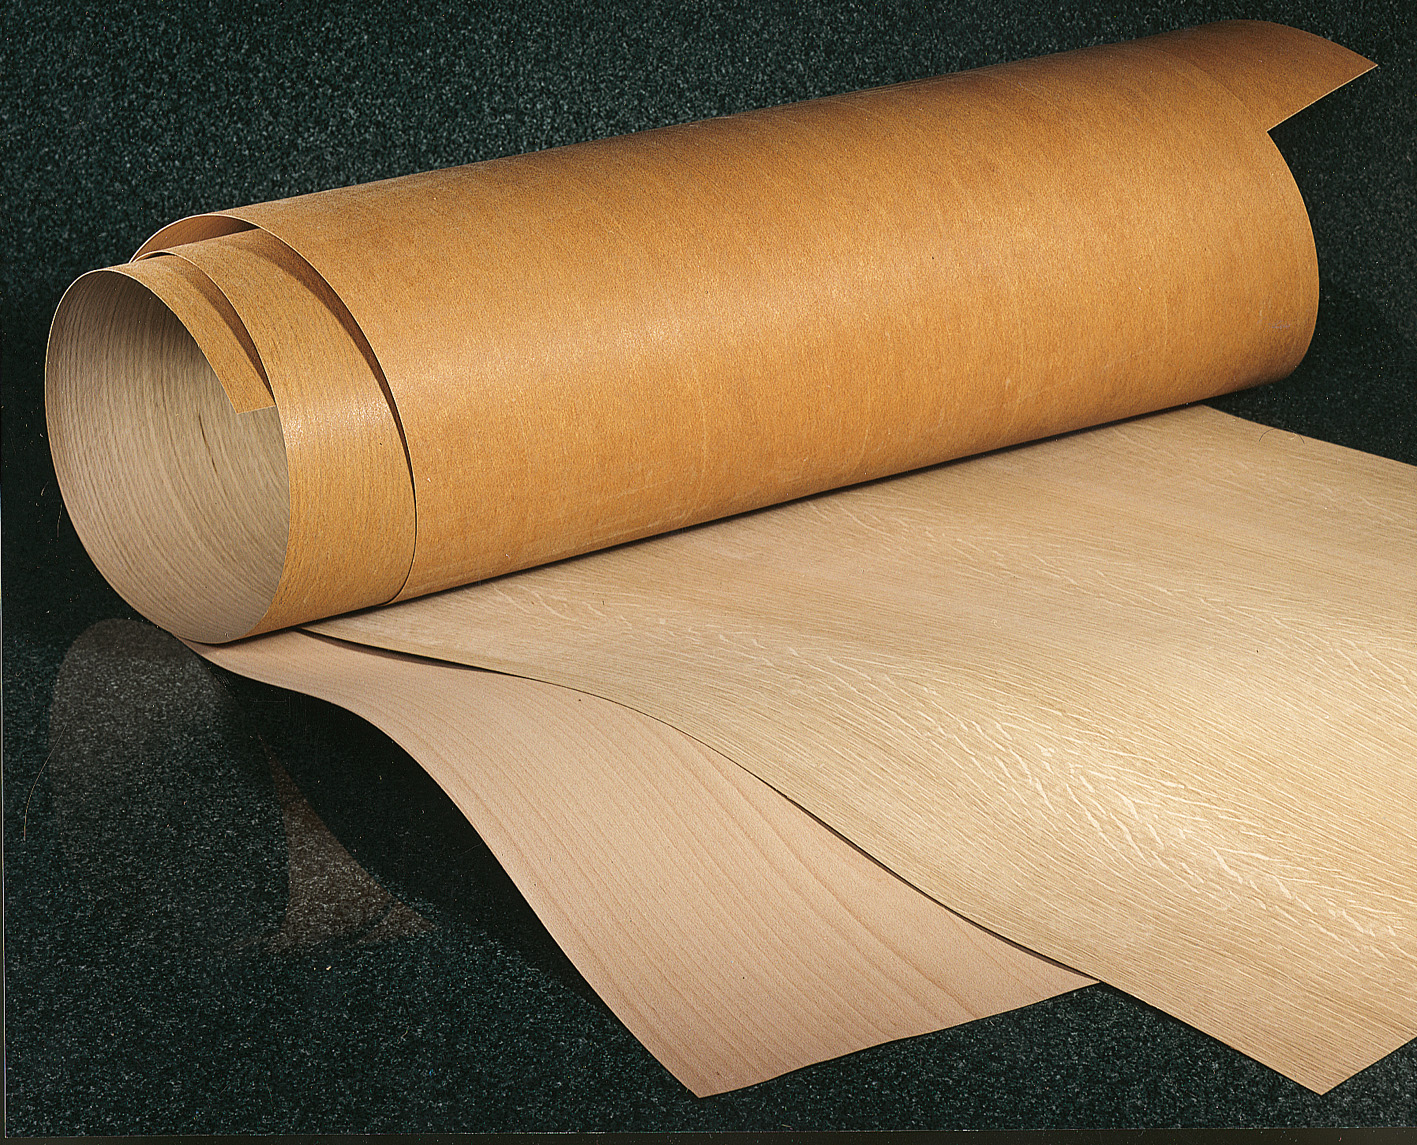 Flexible Sheets And Plywood As Next Edition From 10 To